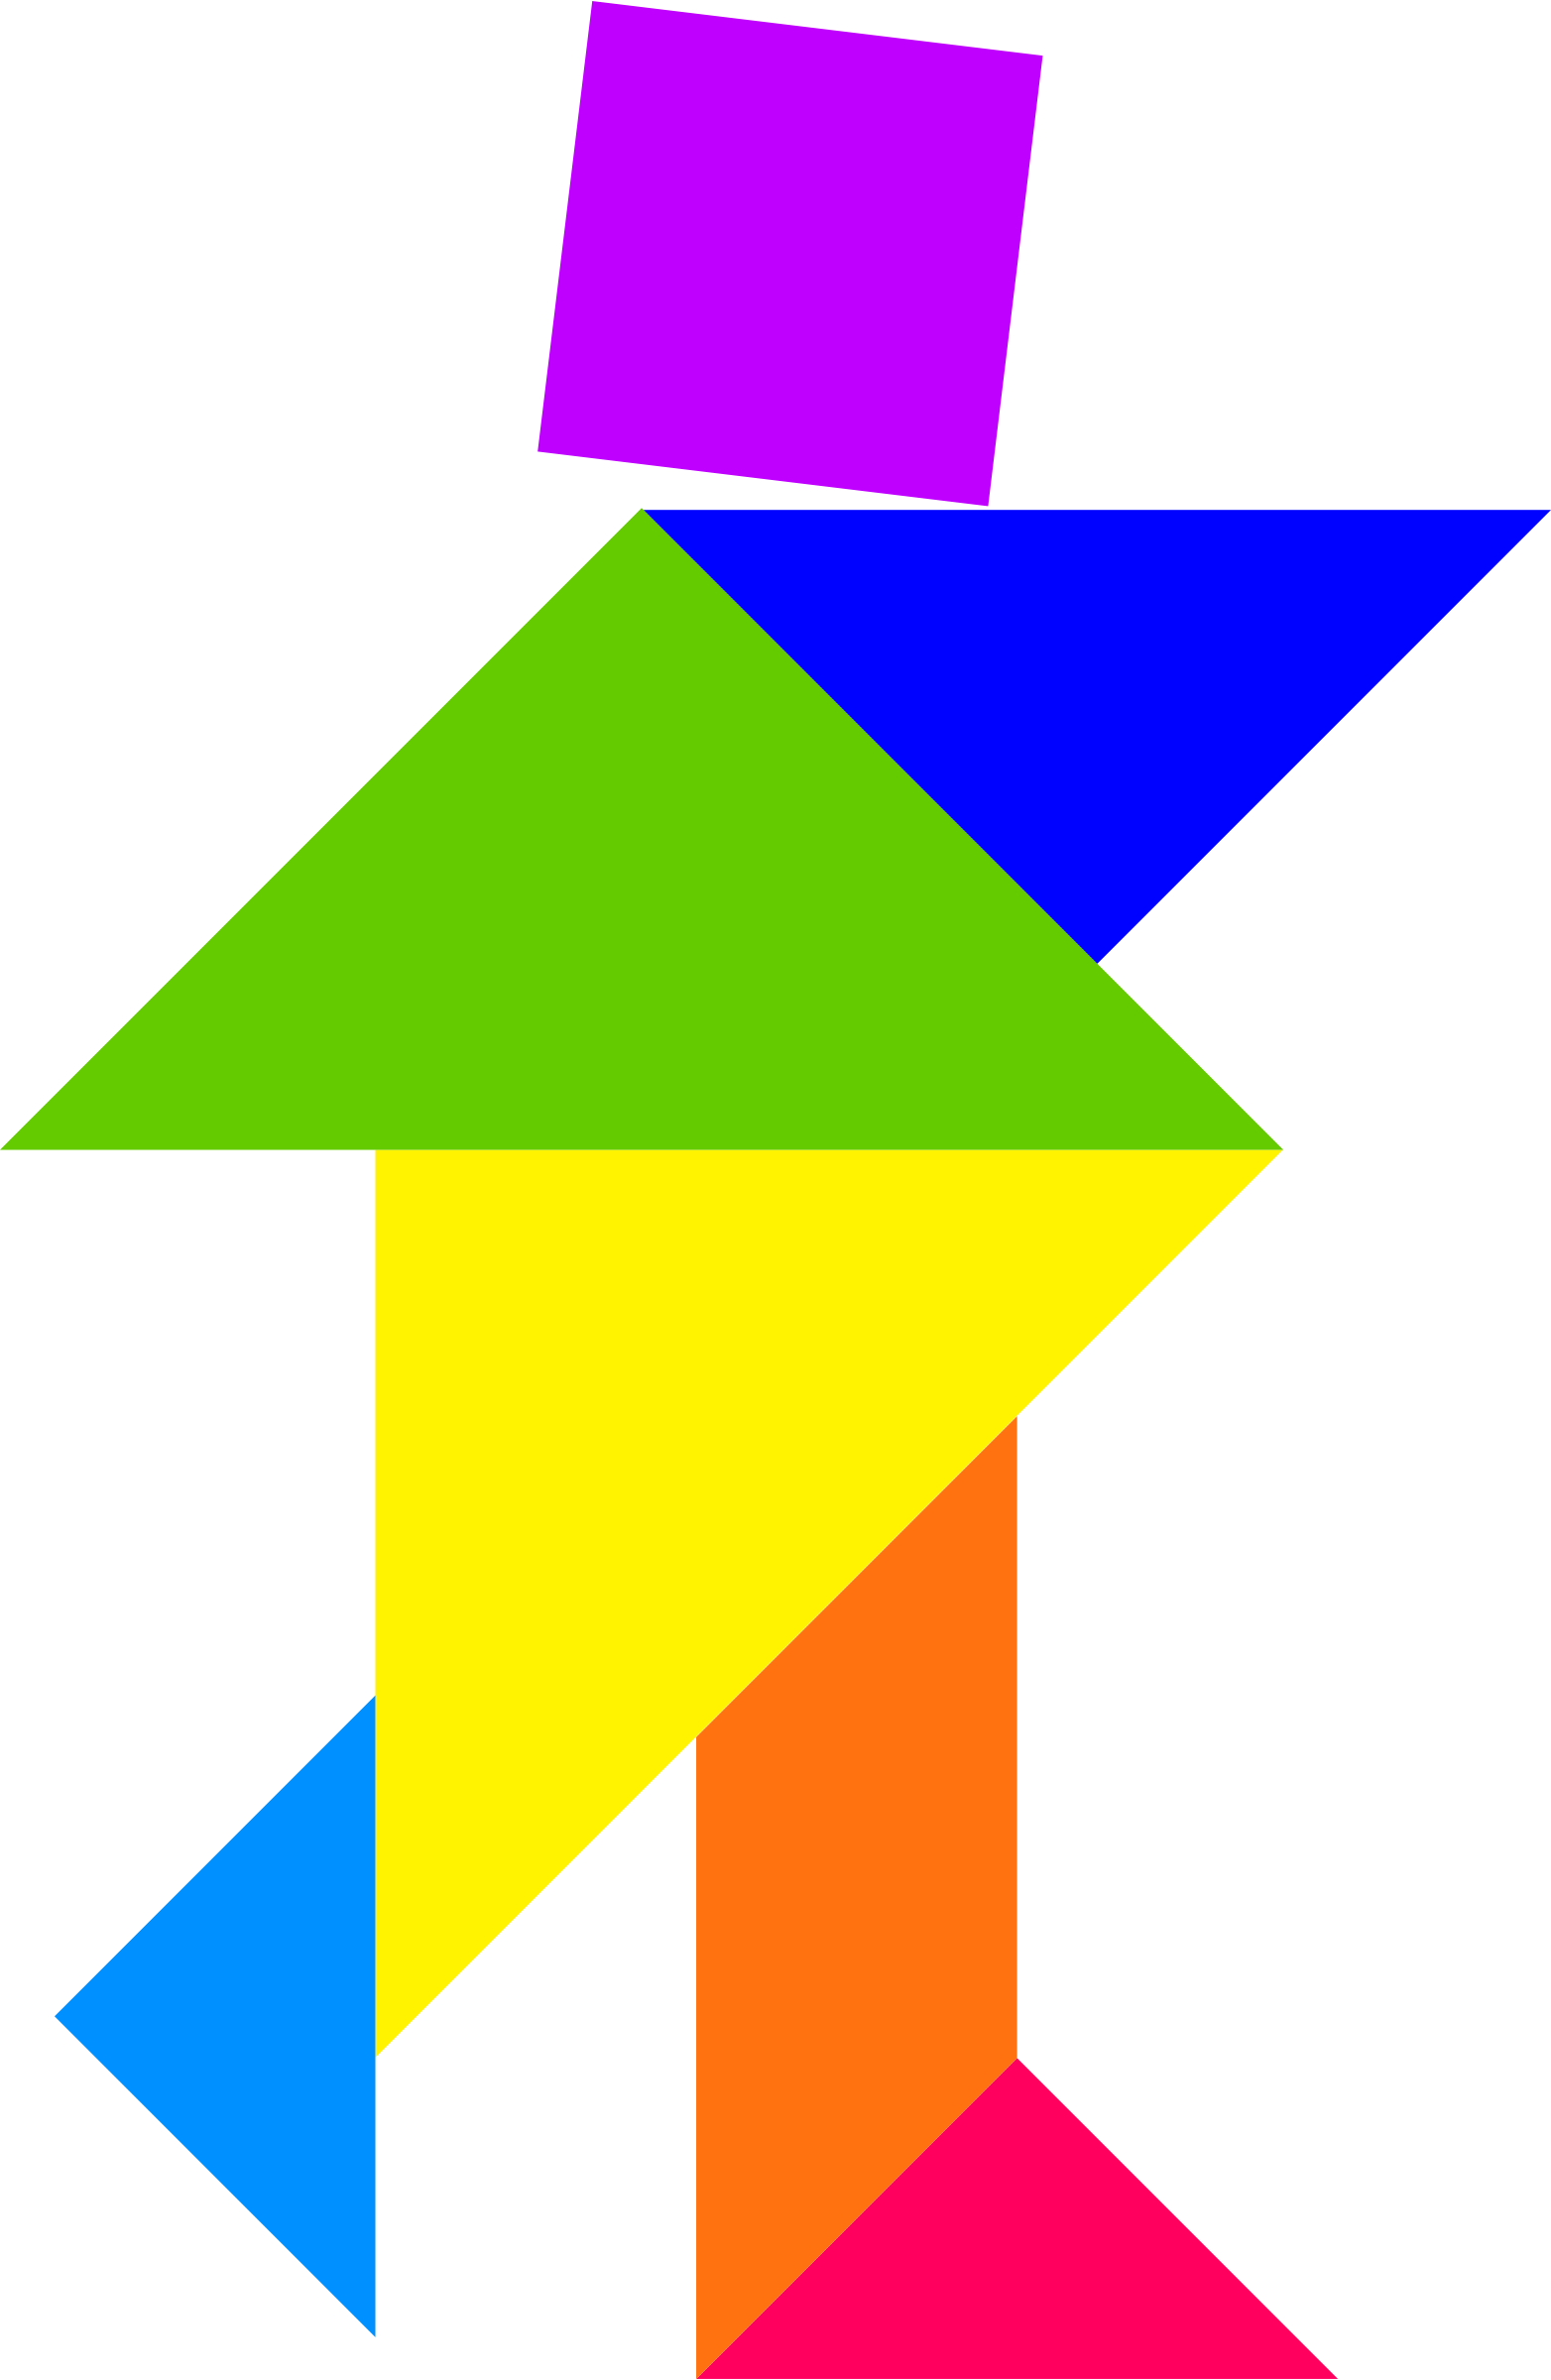 Can't find the perfect clip-art?: www.clipartbest.com/tangram-images